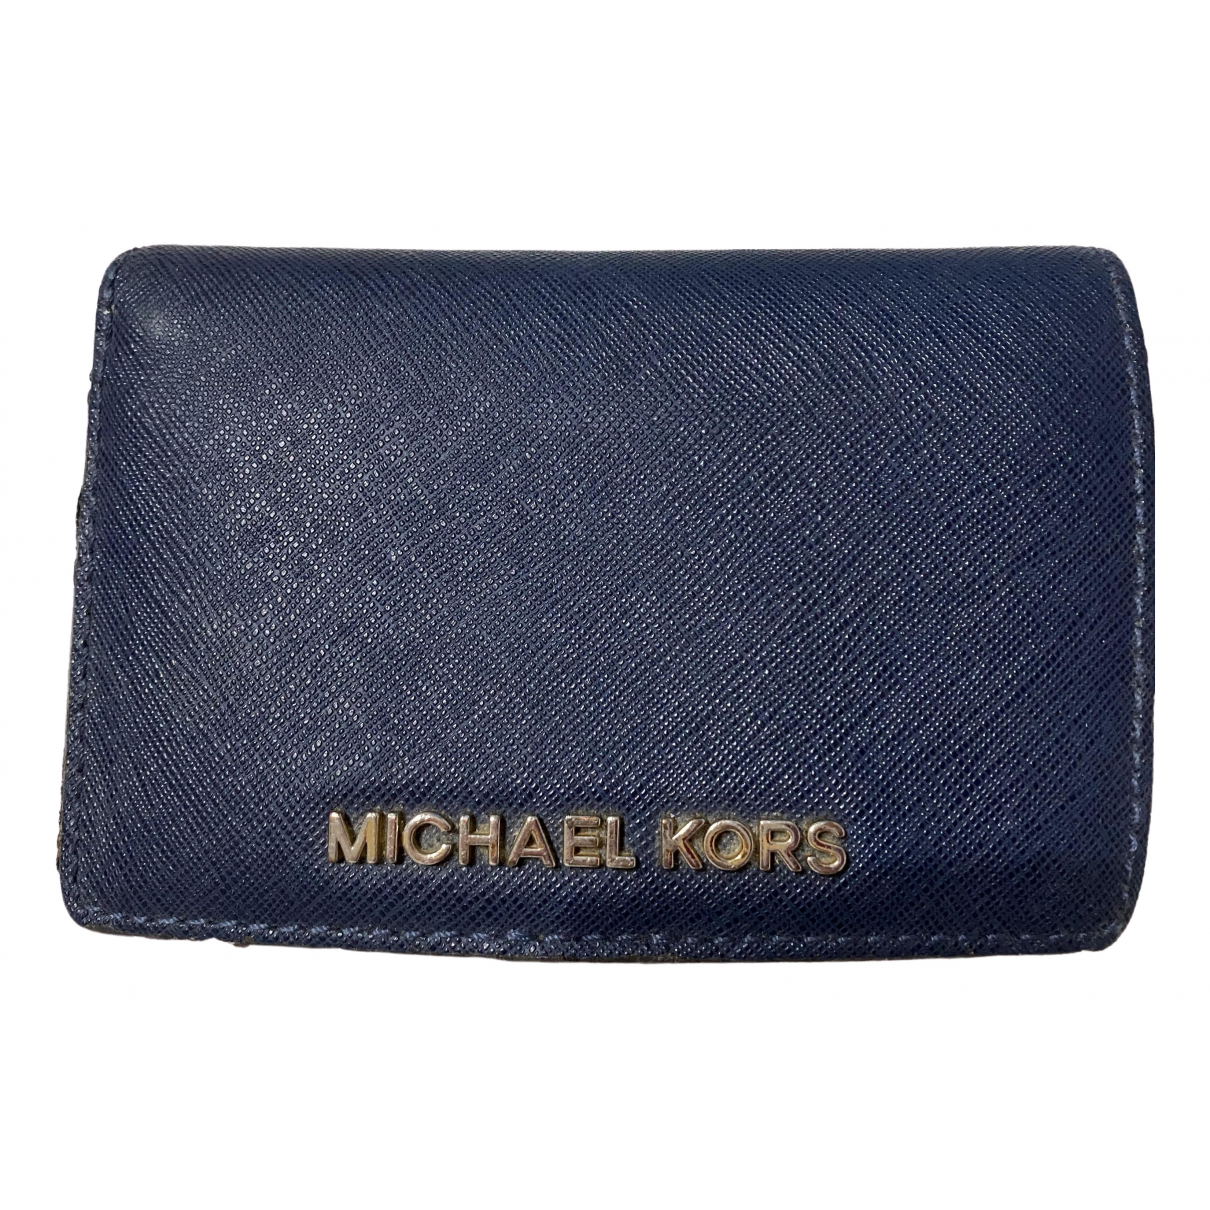 Michael Kors Jet Set Blue Leather wallet for Women \N